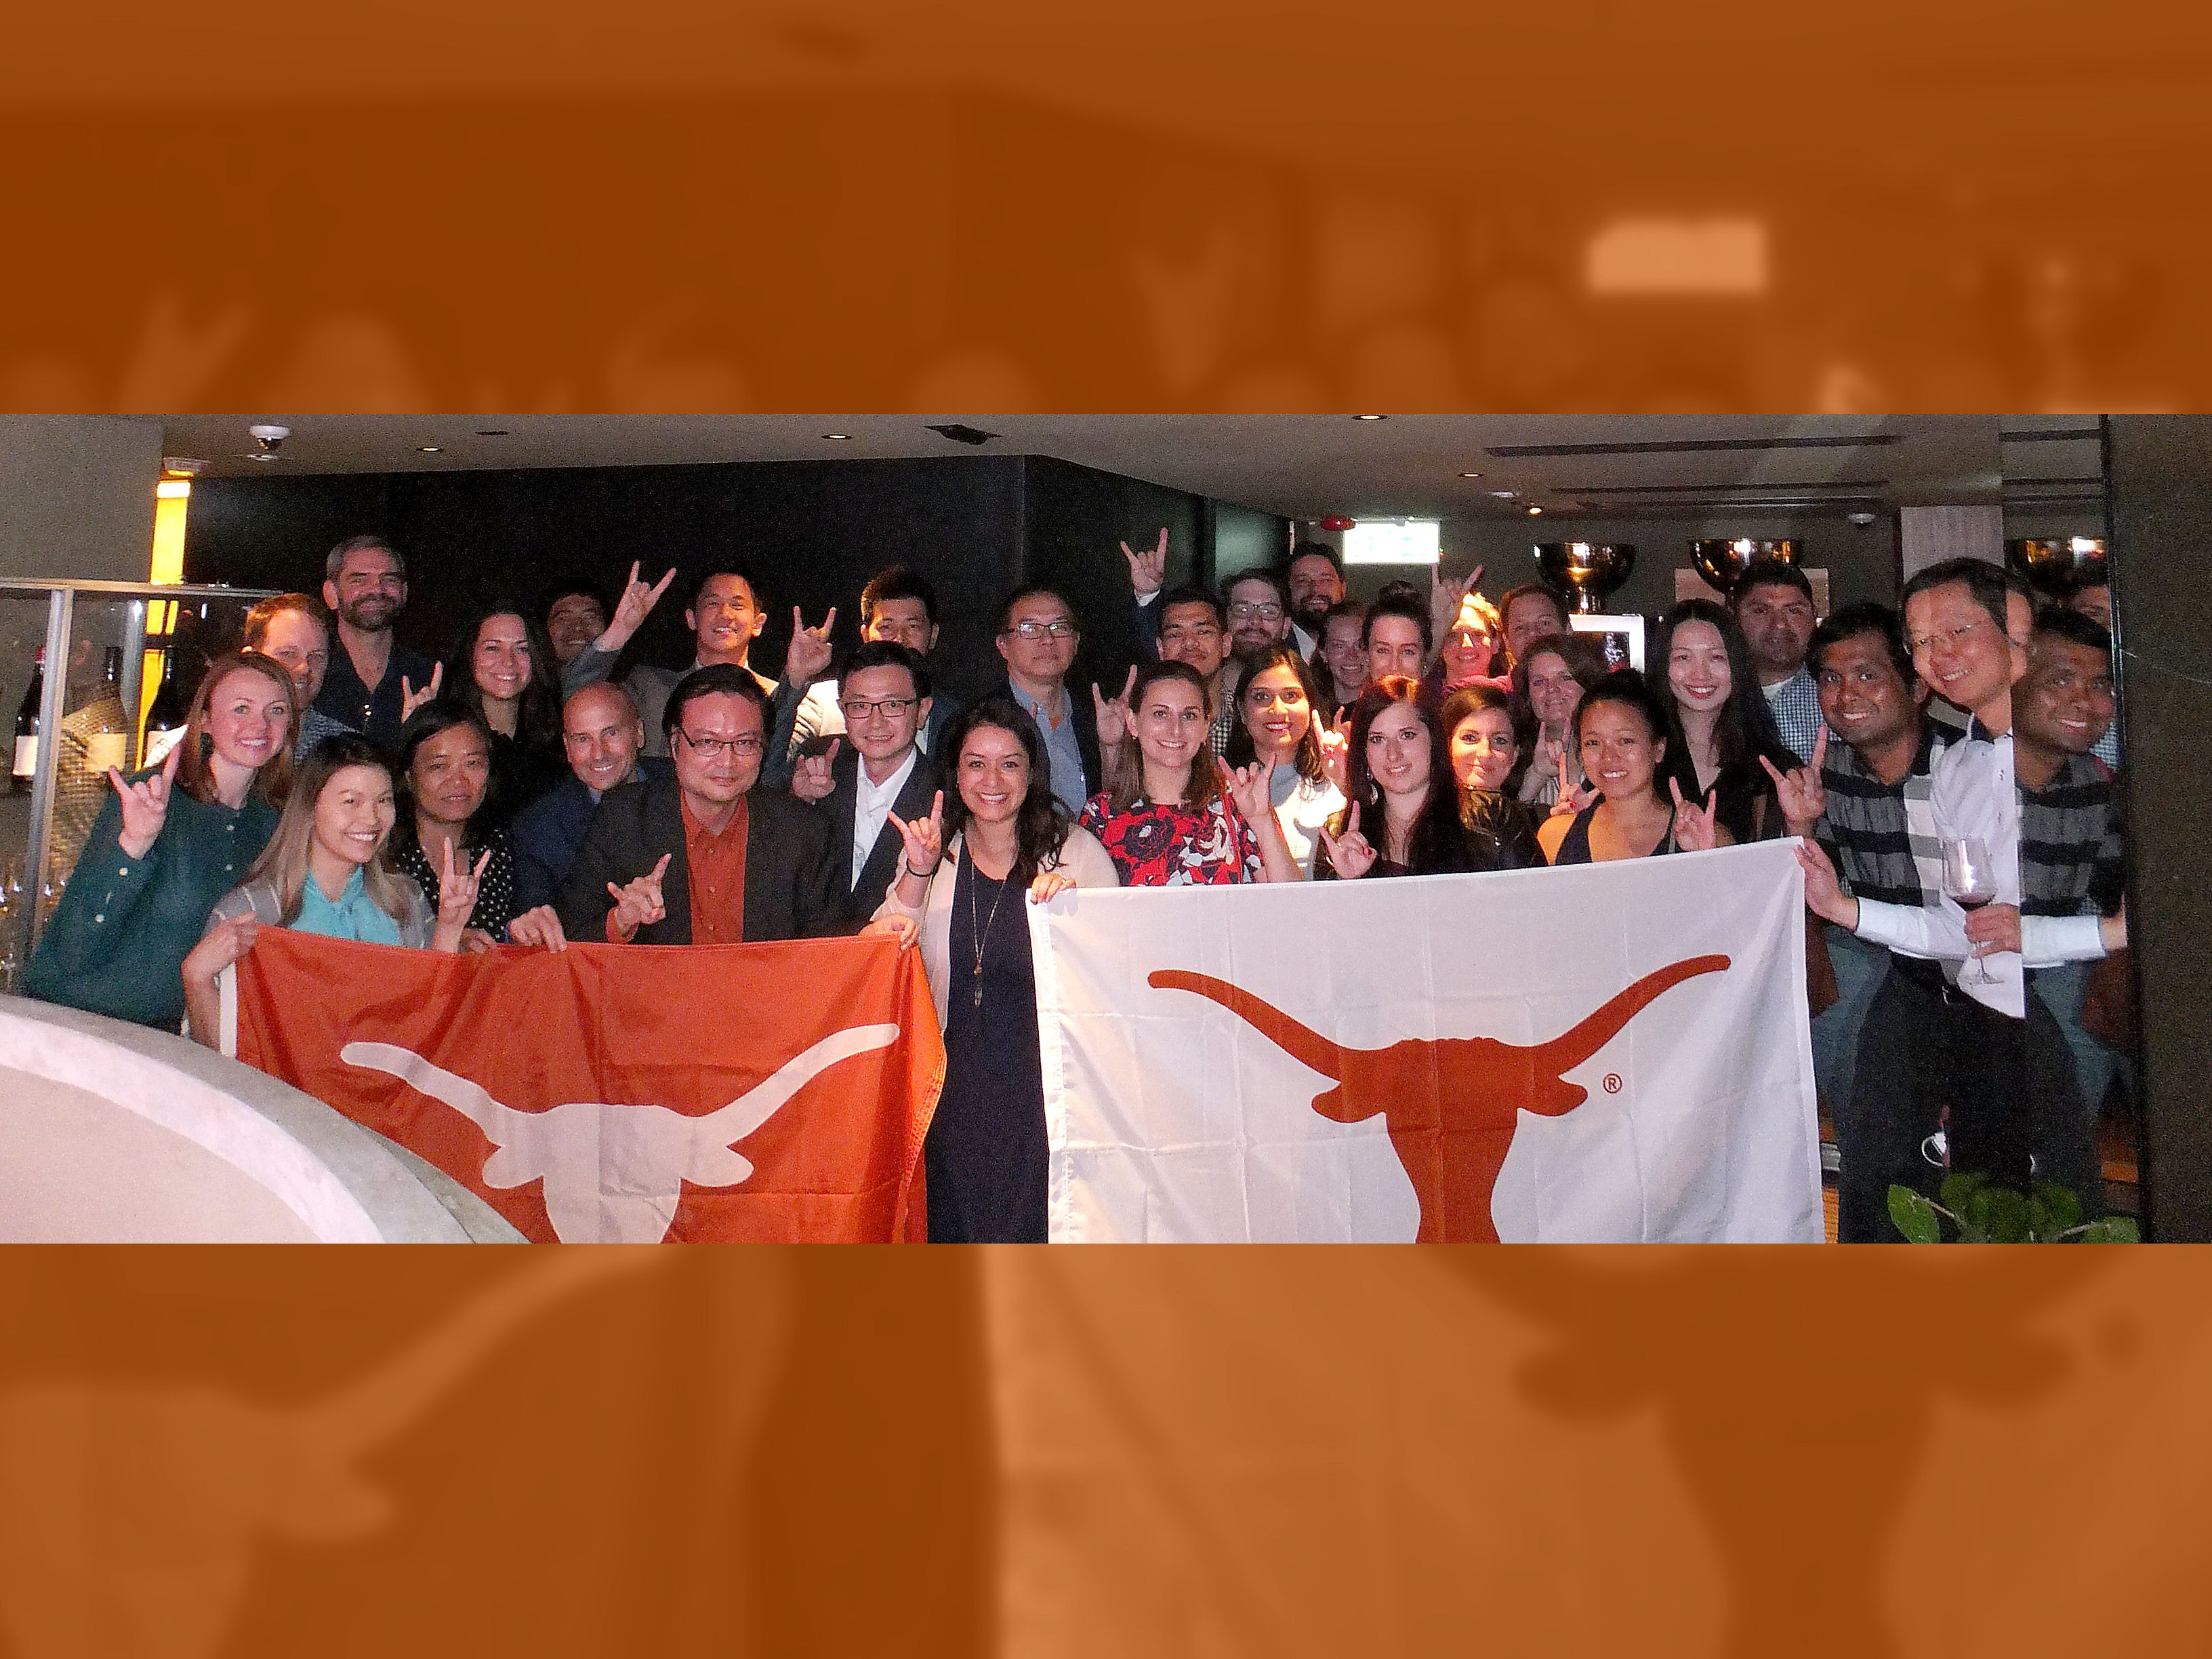 Gathering with UT Global Connections Faculty and Students